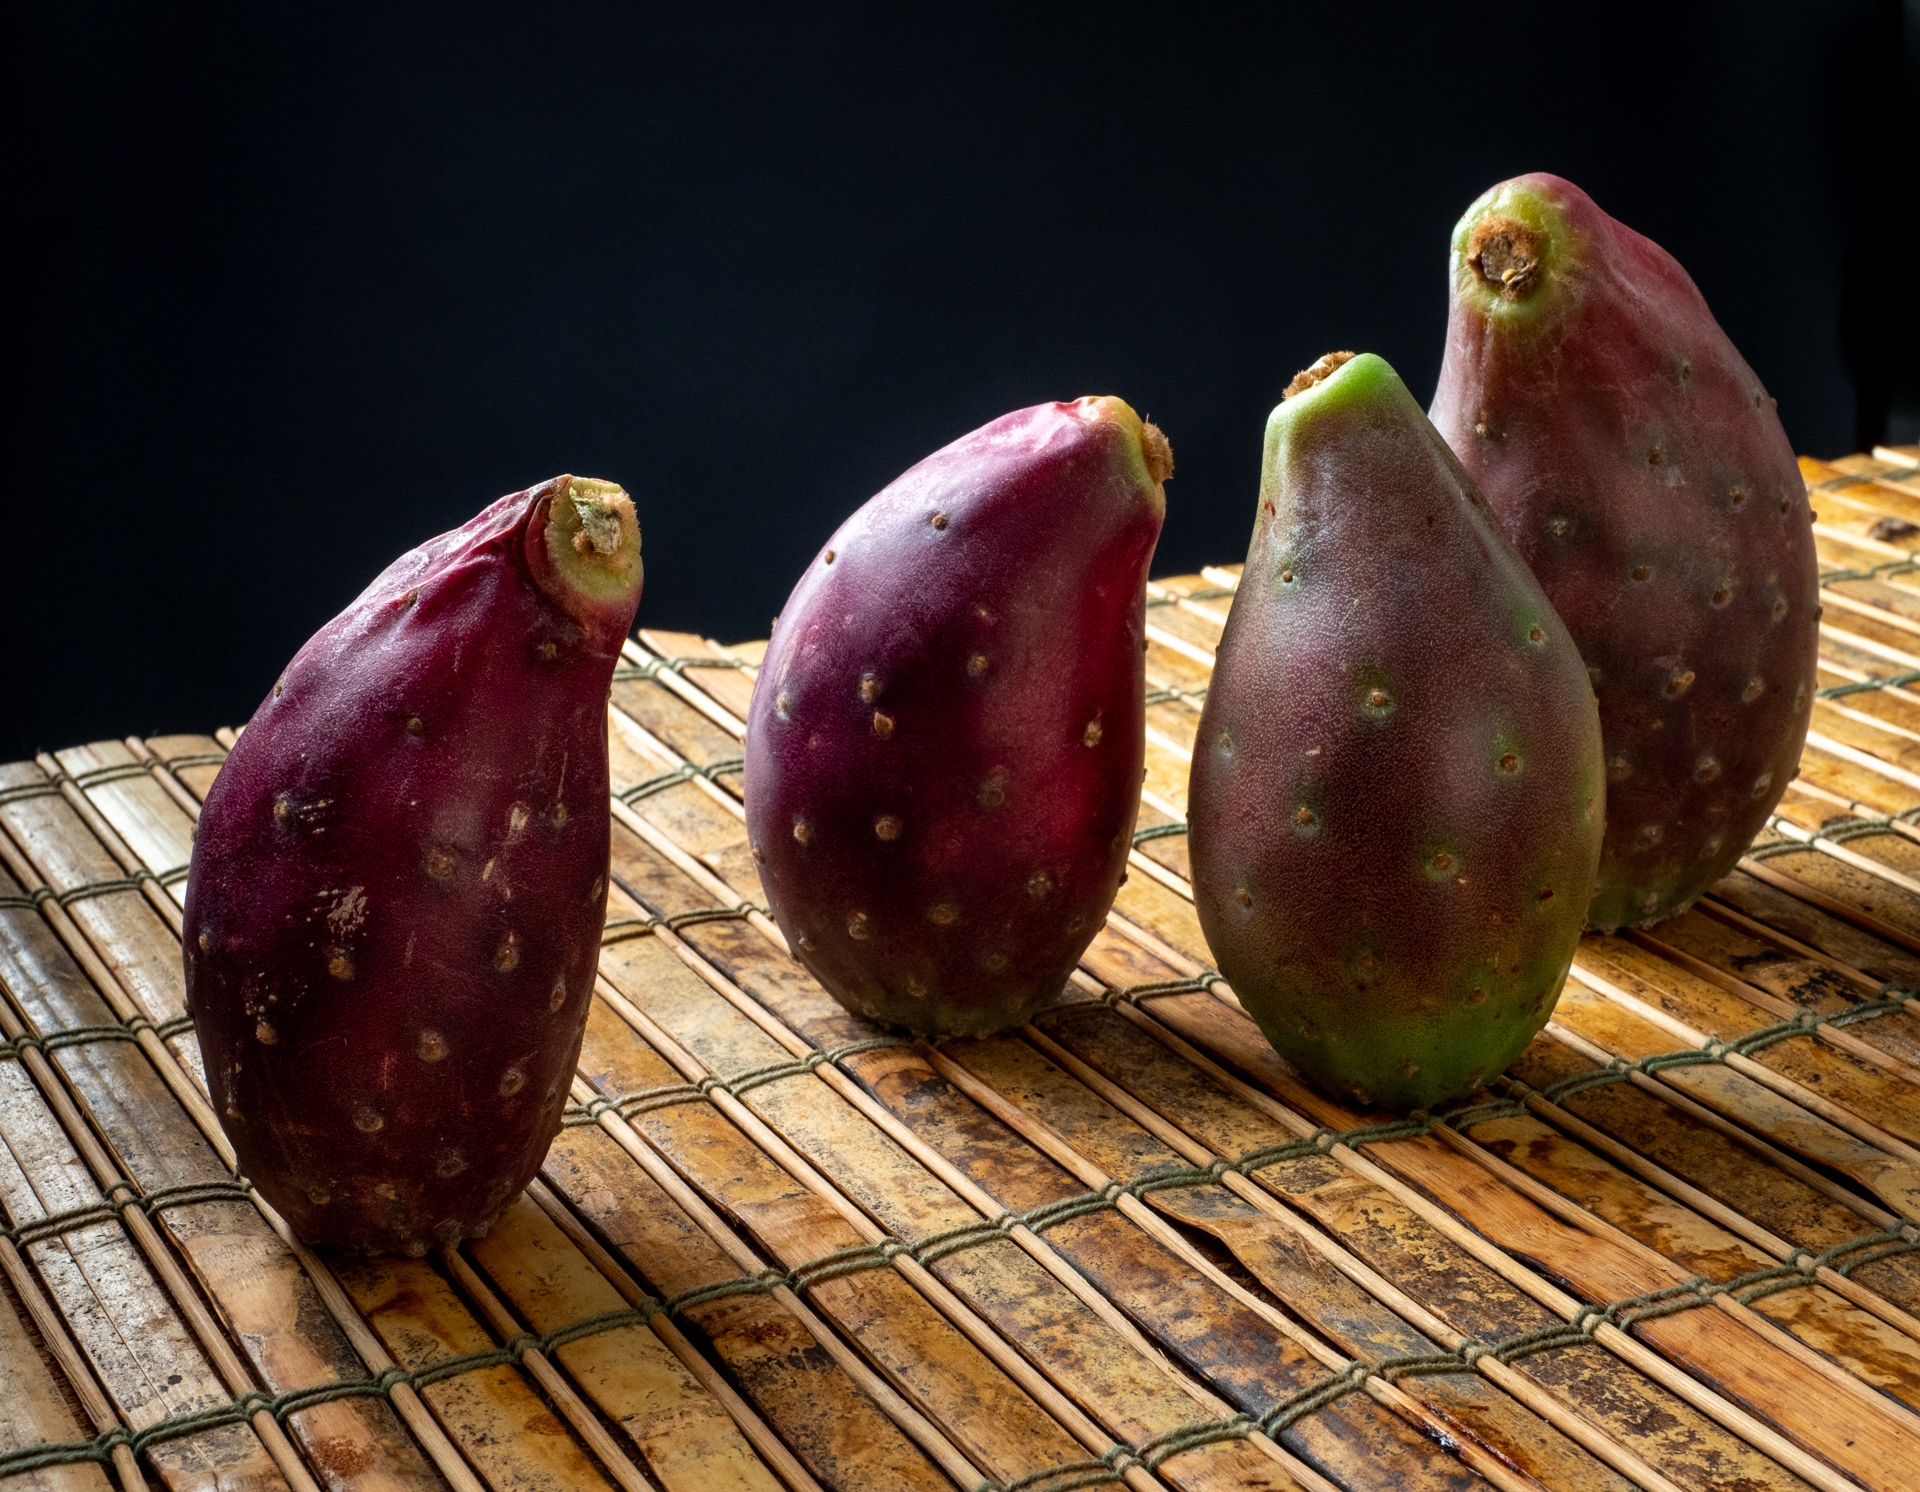 Four Prickly Pears on a bamboo mat